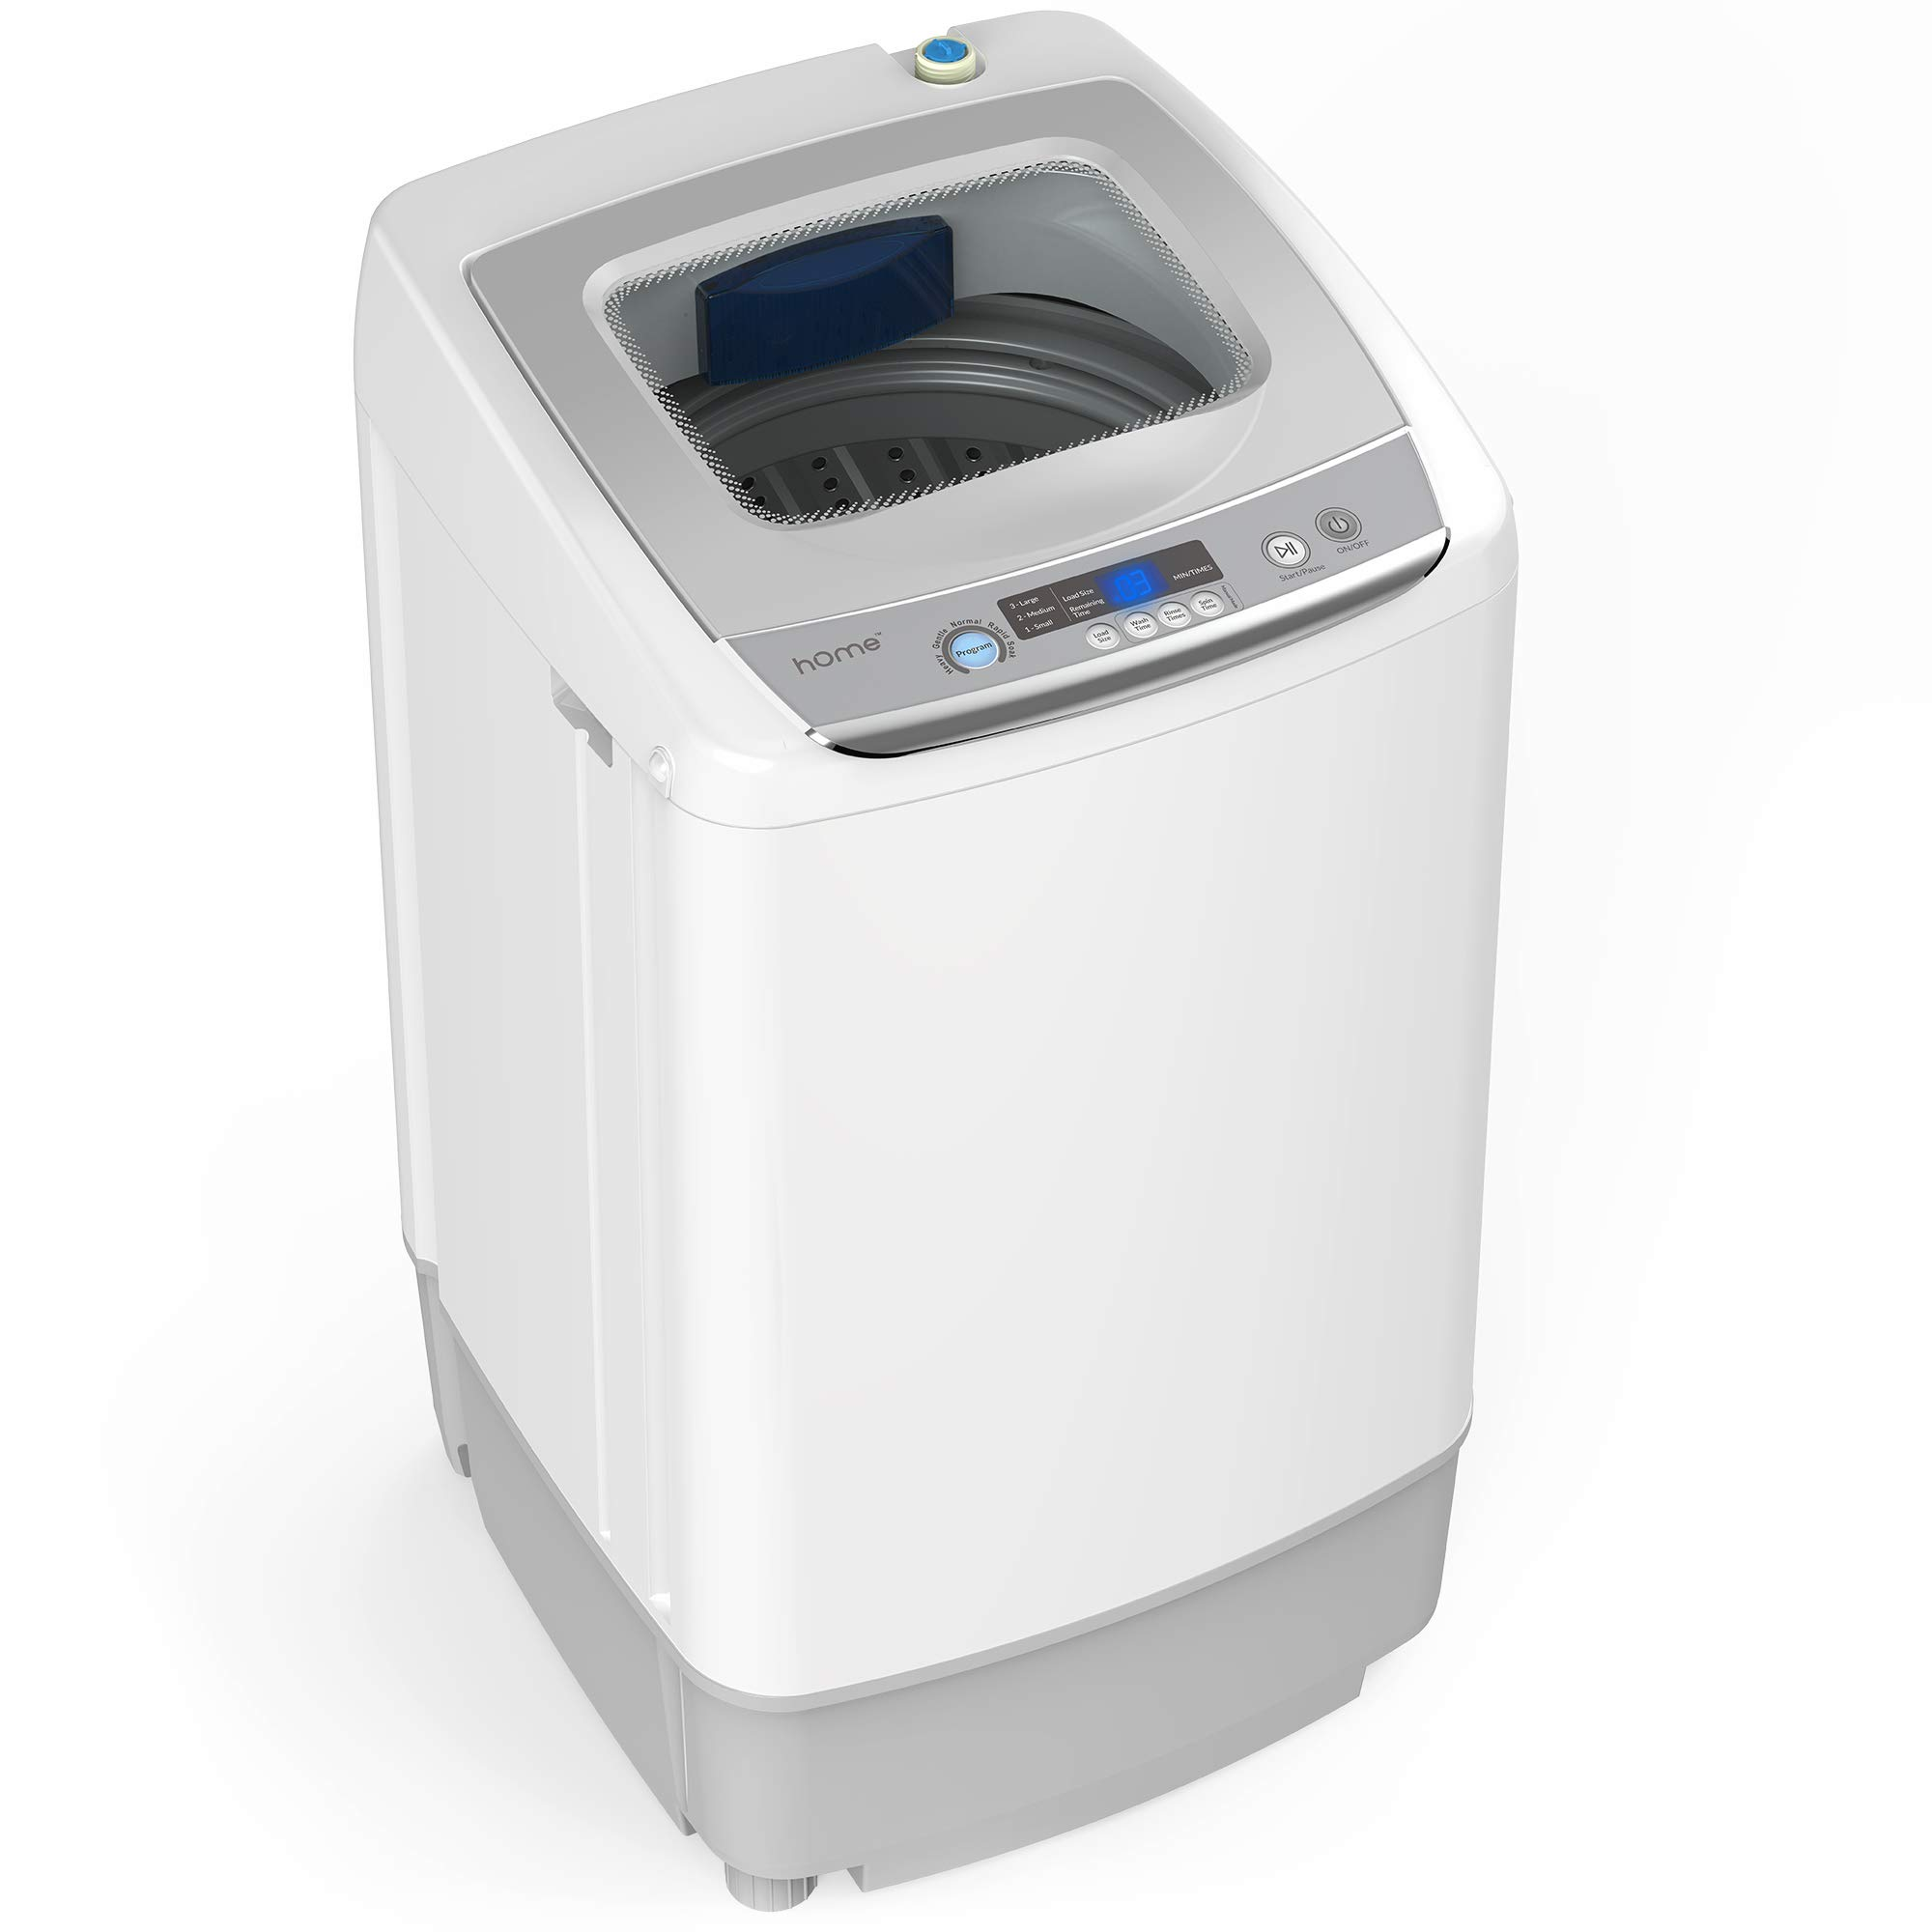 hOmeLabs 0.9 Cu. Ft. Portable Washing Machine – 6 Pound Capacity, Top  Loading, 5 Wash Cycles, 3 Water Level Selections and LED Display – Perfect  for ...